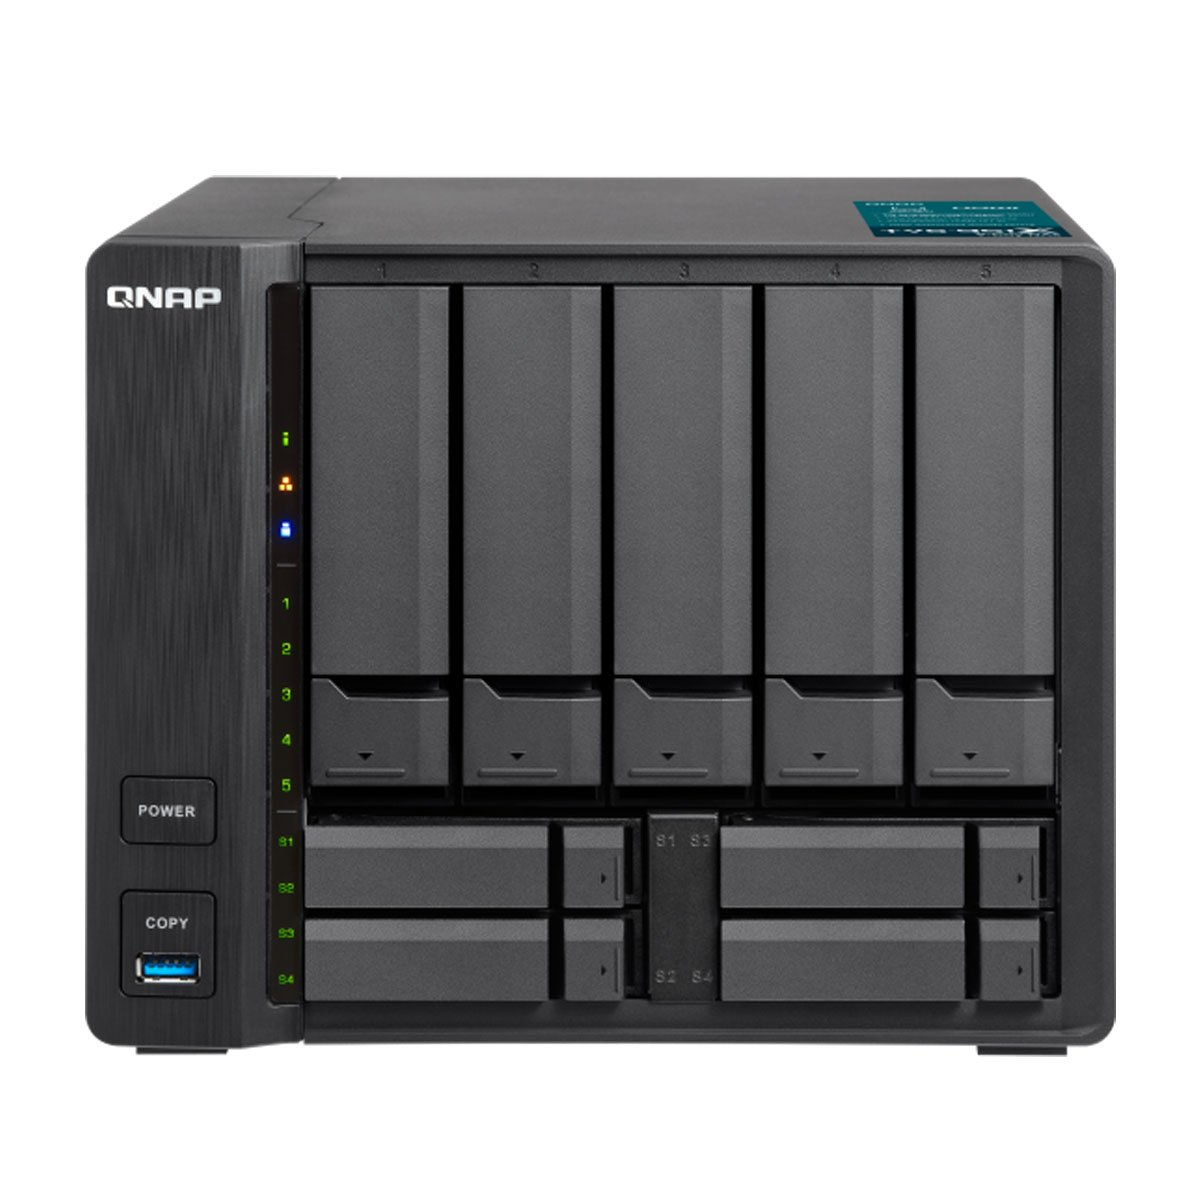 QNAP TVS-951X-8G-US 5+4 Bay NAS Intel Celeron Dual-core 1.8 GHz, 8GB DDR4 with 1 x 10GbE NBASE-T LAN, 1 x GbE LAN, 1 x HDMI